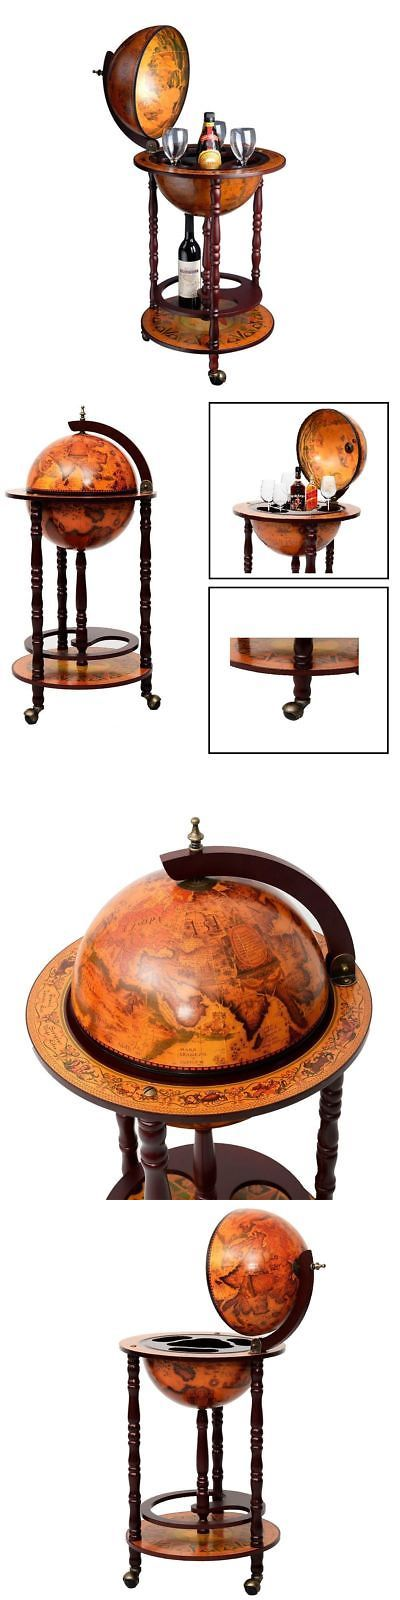 Bar Carts and Serving Carts 183320: Mini Bar Cart Cabinet Wine Rack Liquor Bottle Glass Storage Stand Vintage Globe -> BUY IT NOW ONLY: $86.95 on eBay!